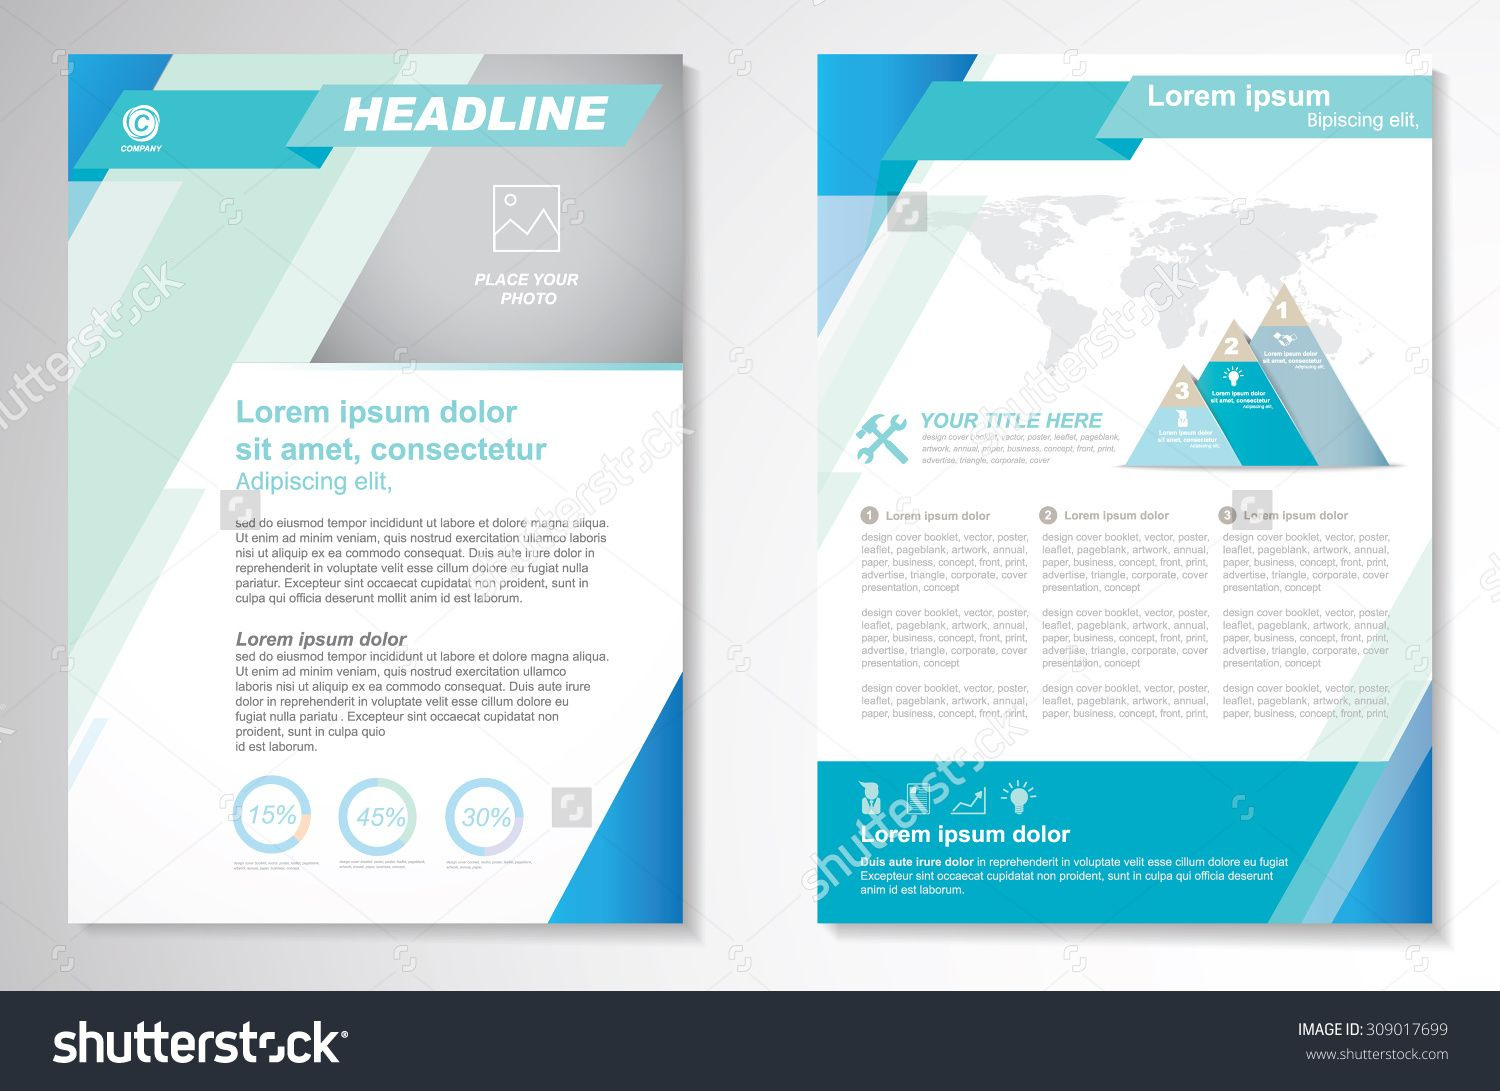 Brochure design google search art217 brochurepanteleev brochure design google search pronofoot35fo Images